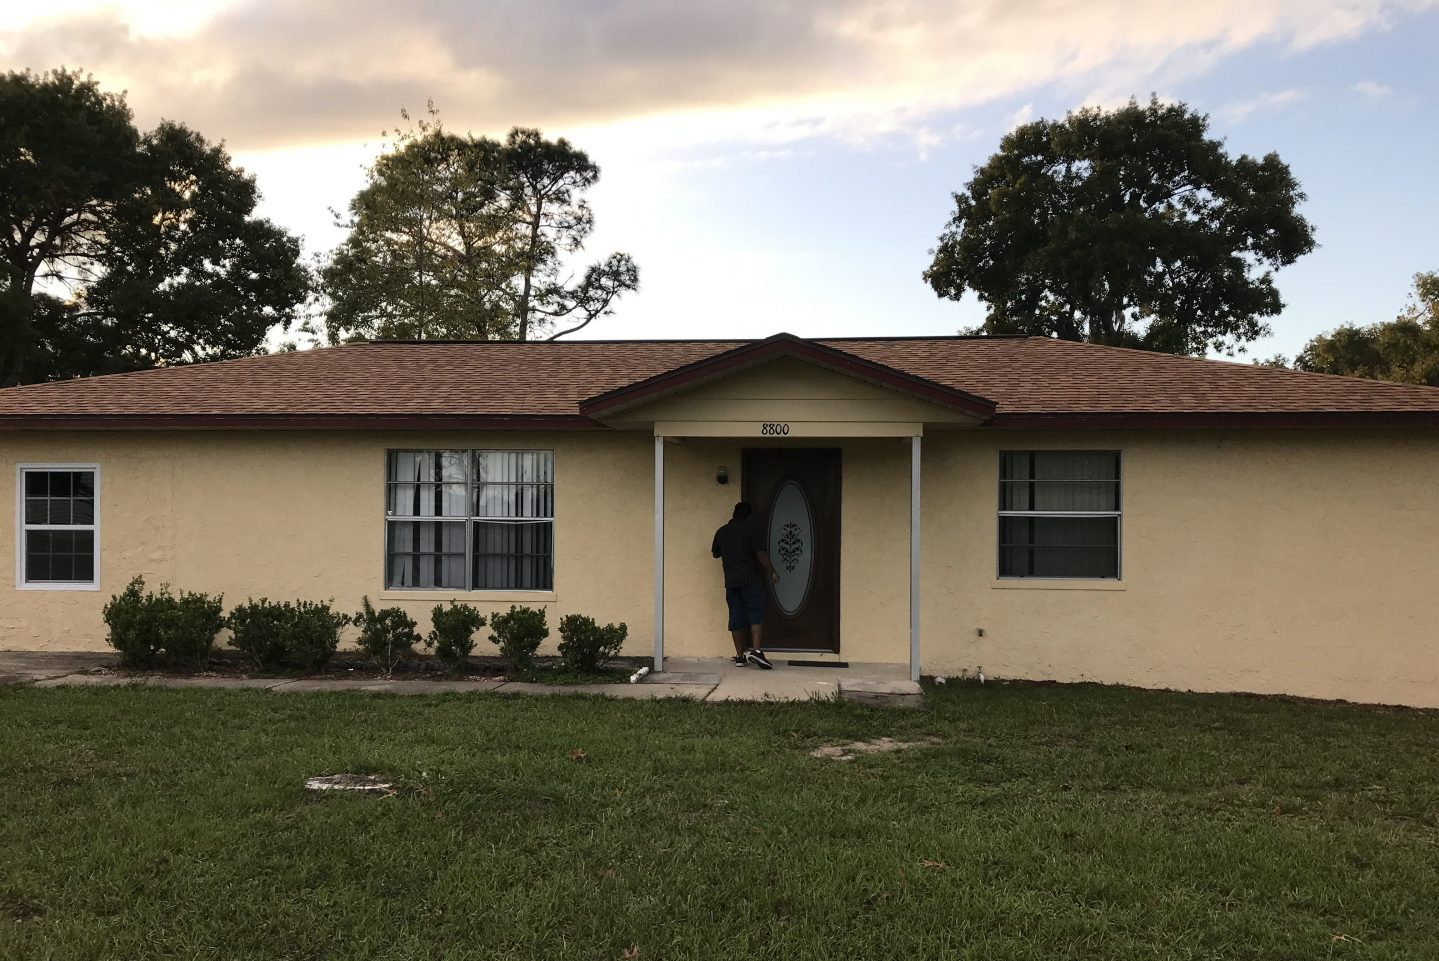 A home Simple Sale Central Florida recently purchased.